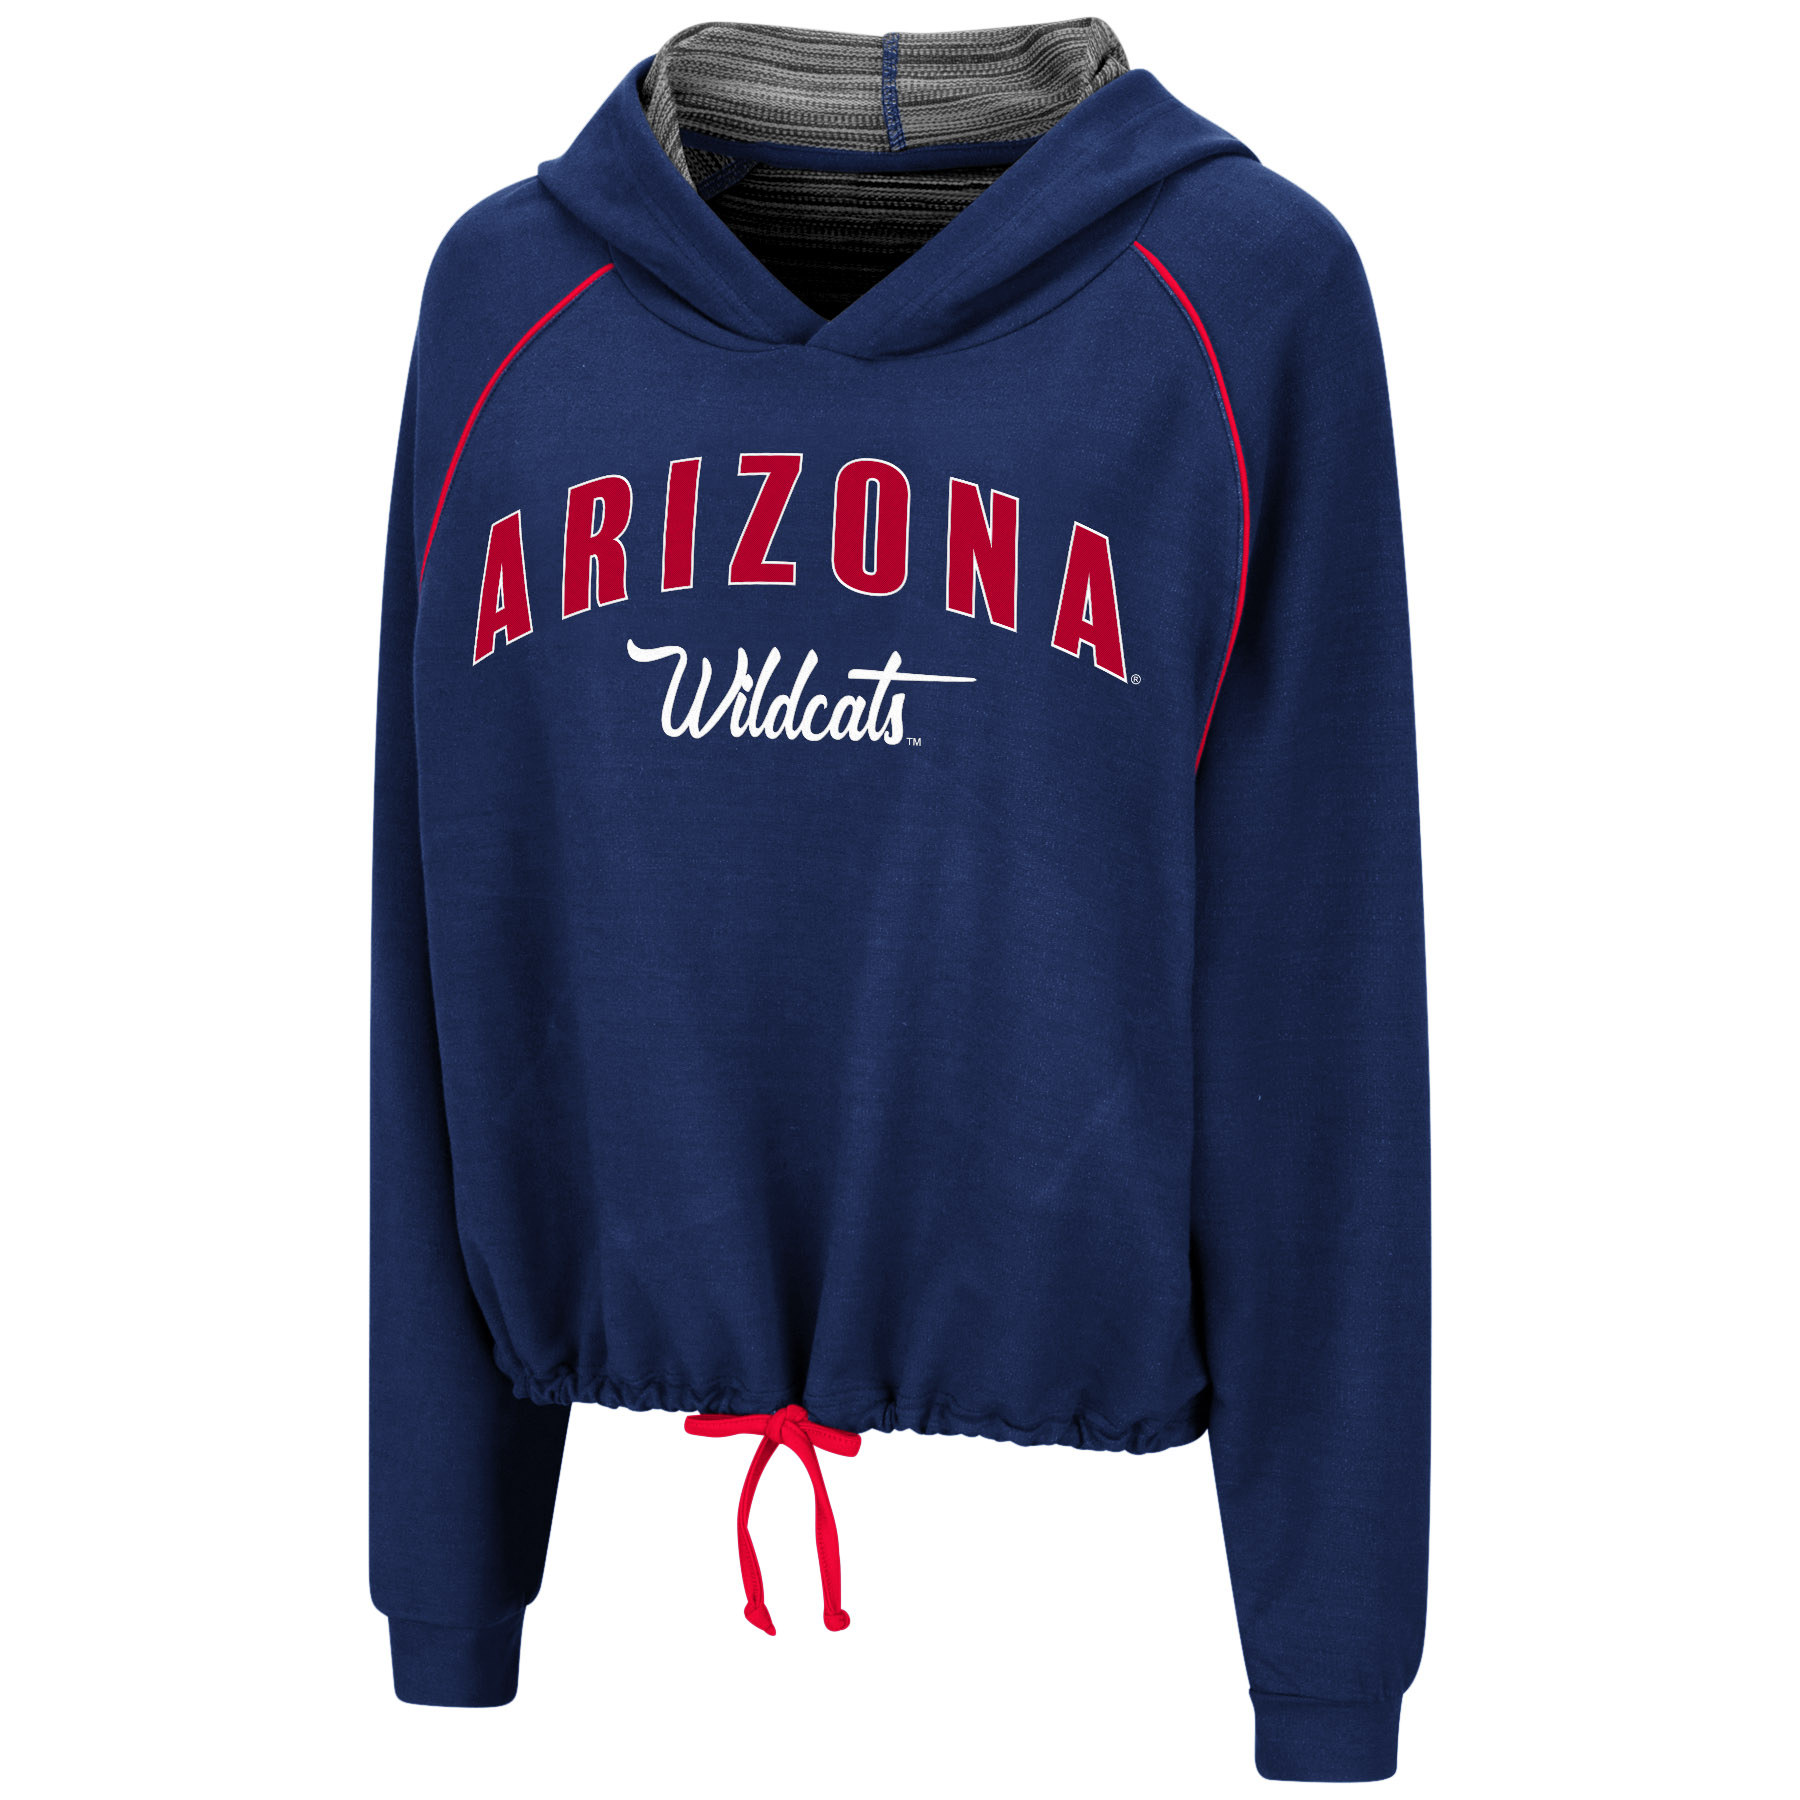 Cover Image For Colosseum: Arizona Harvest Festival Tie Front Hoodie -Navy